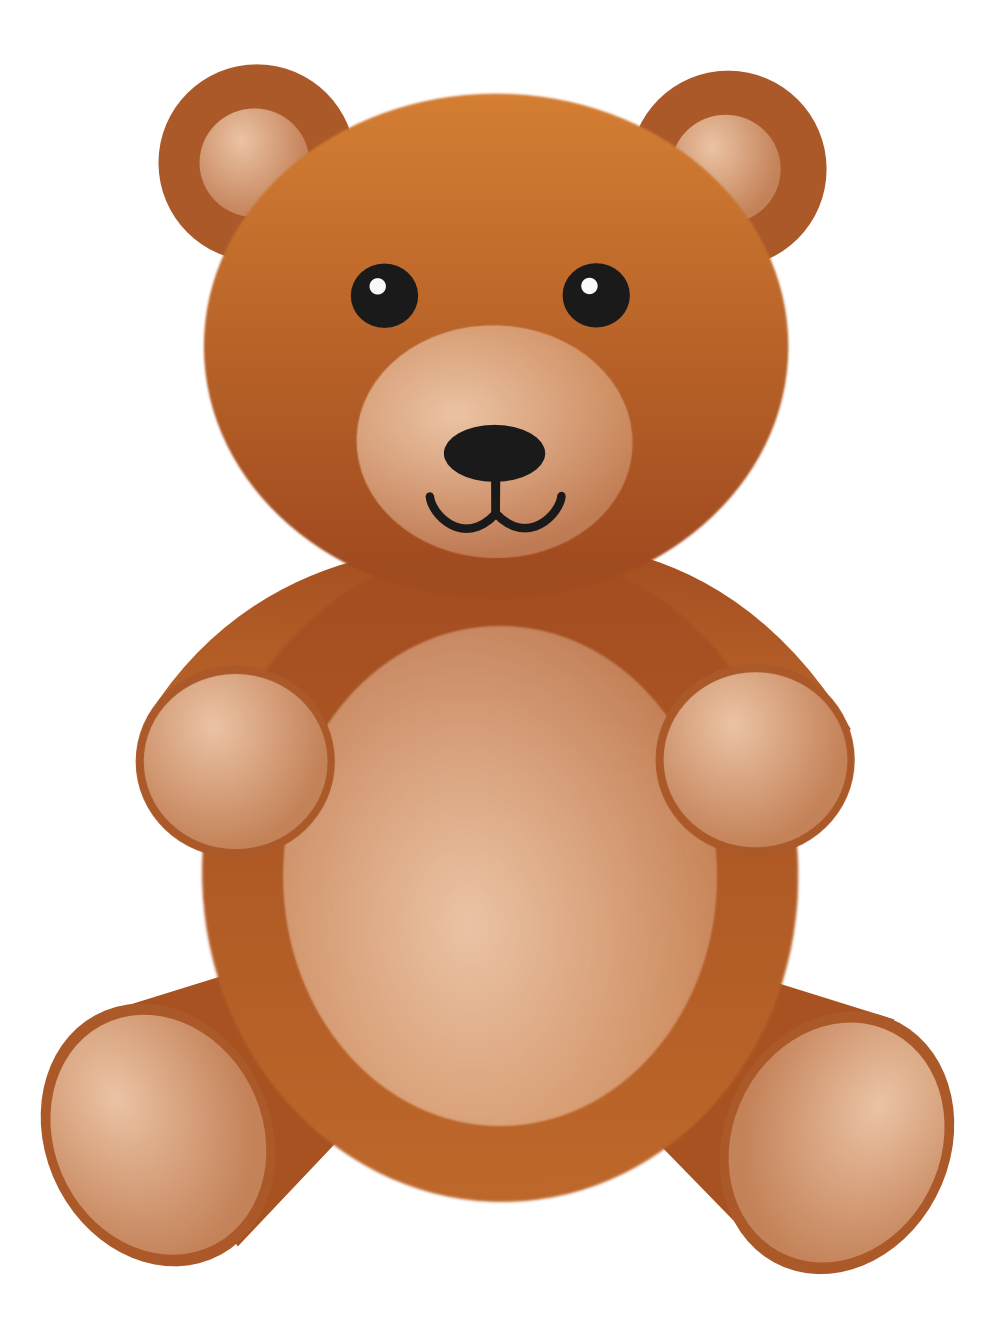 Teddy Bear clipart #4, Download drawings